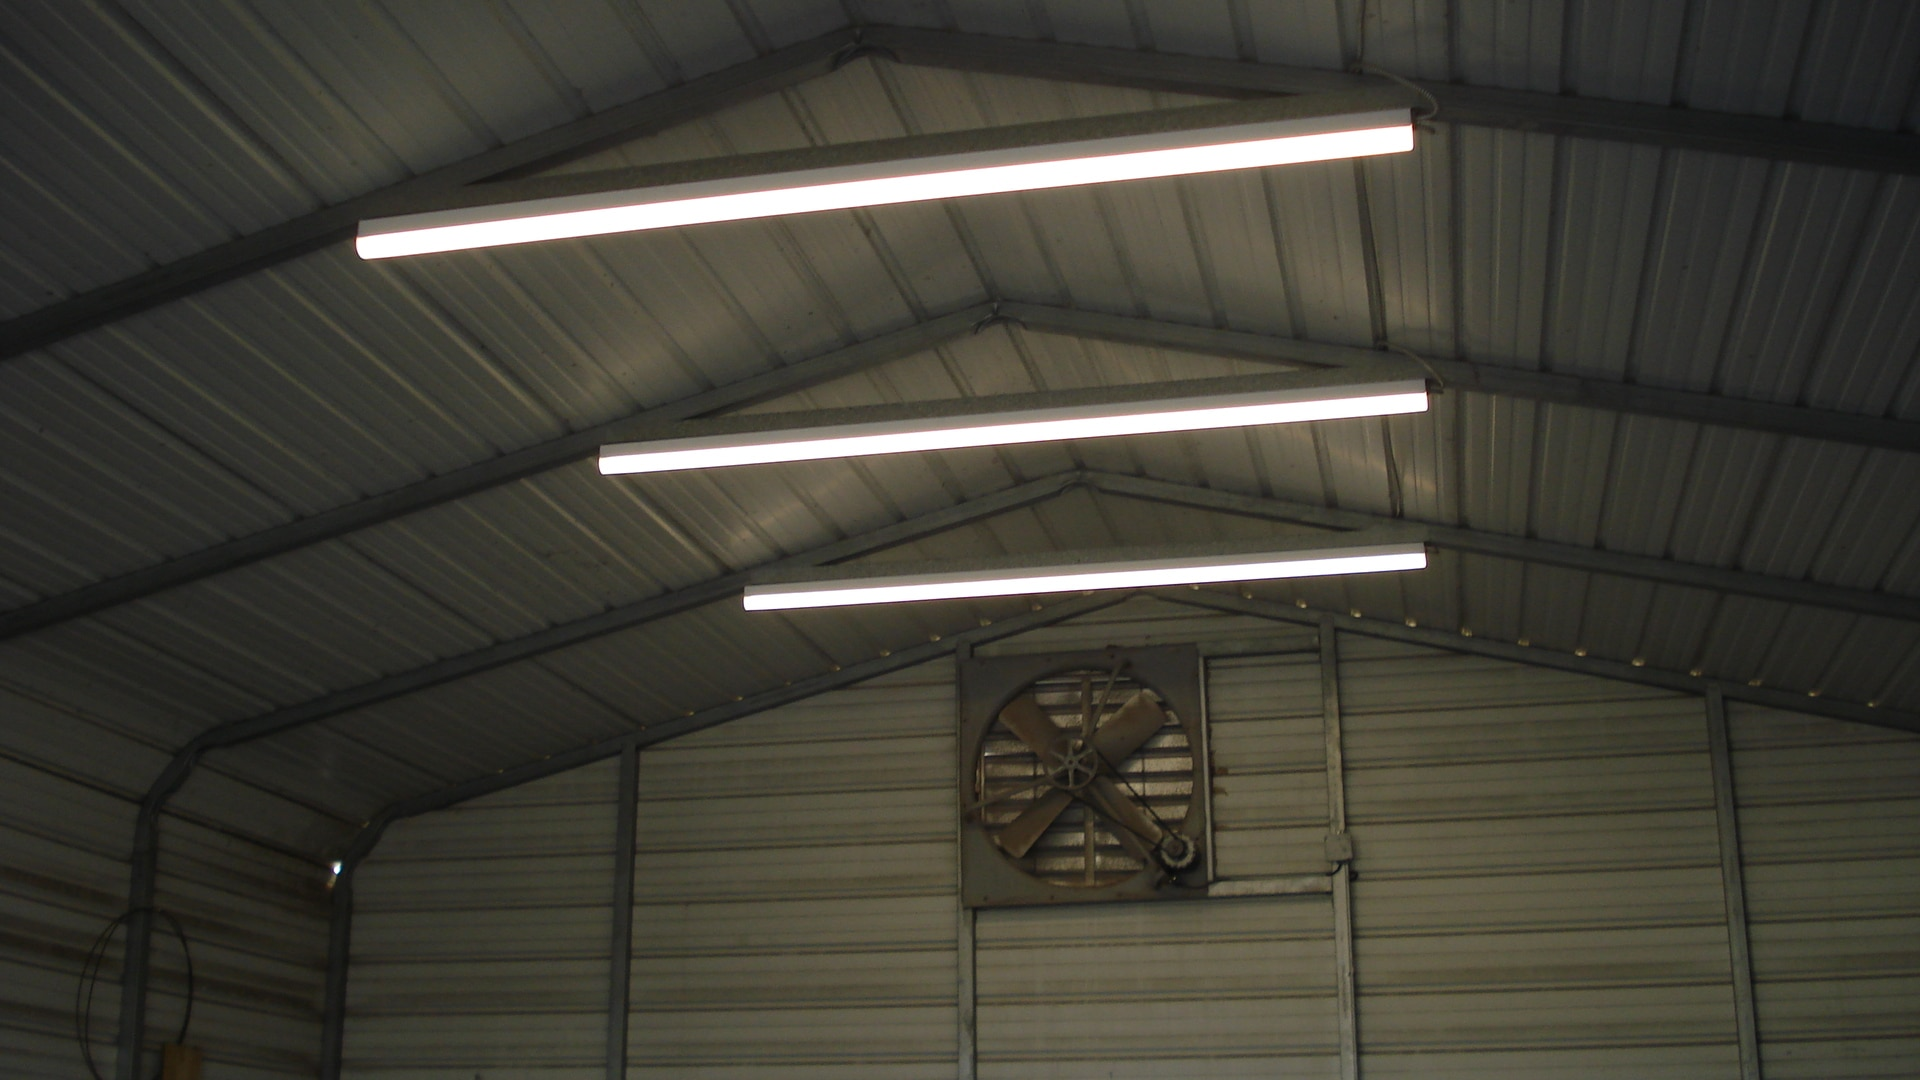 The switch to light-emitting diode lighting for interior and exterior lights at Defense Fuel Support Point Tampa in Florida will save more than $11,579 a year.